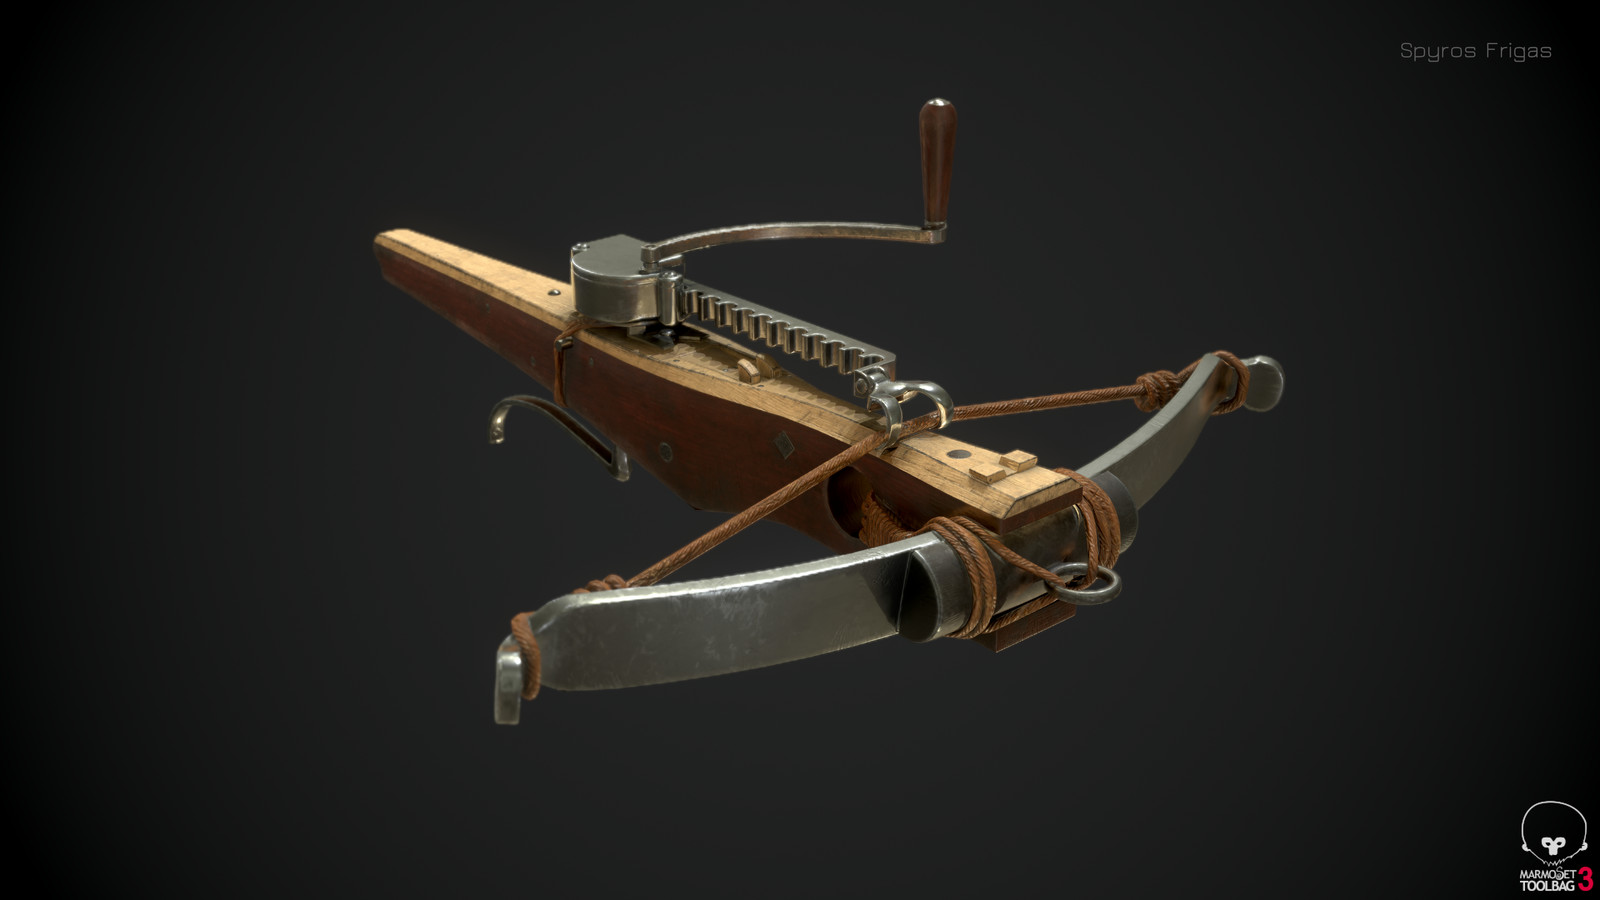 Medieval cranequin crossbow (16th century)